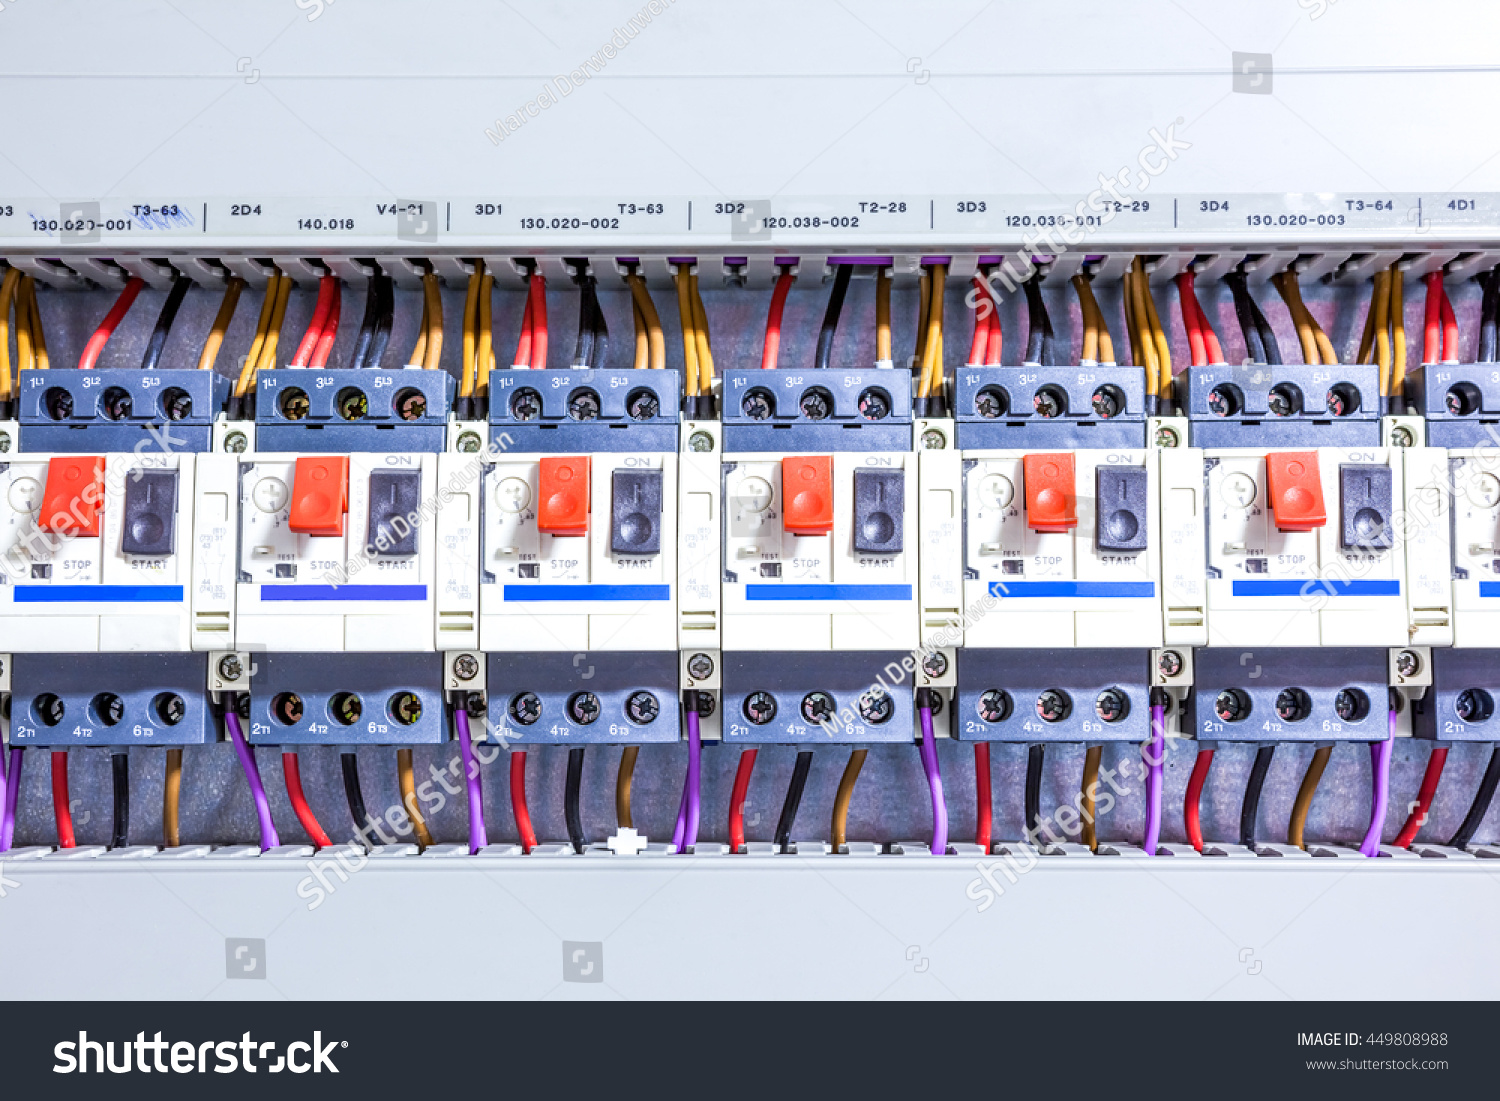 This Electricity Fuse Box System Whole Stock Photo Edit Now House Wiring Is An For The